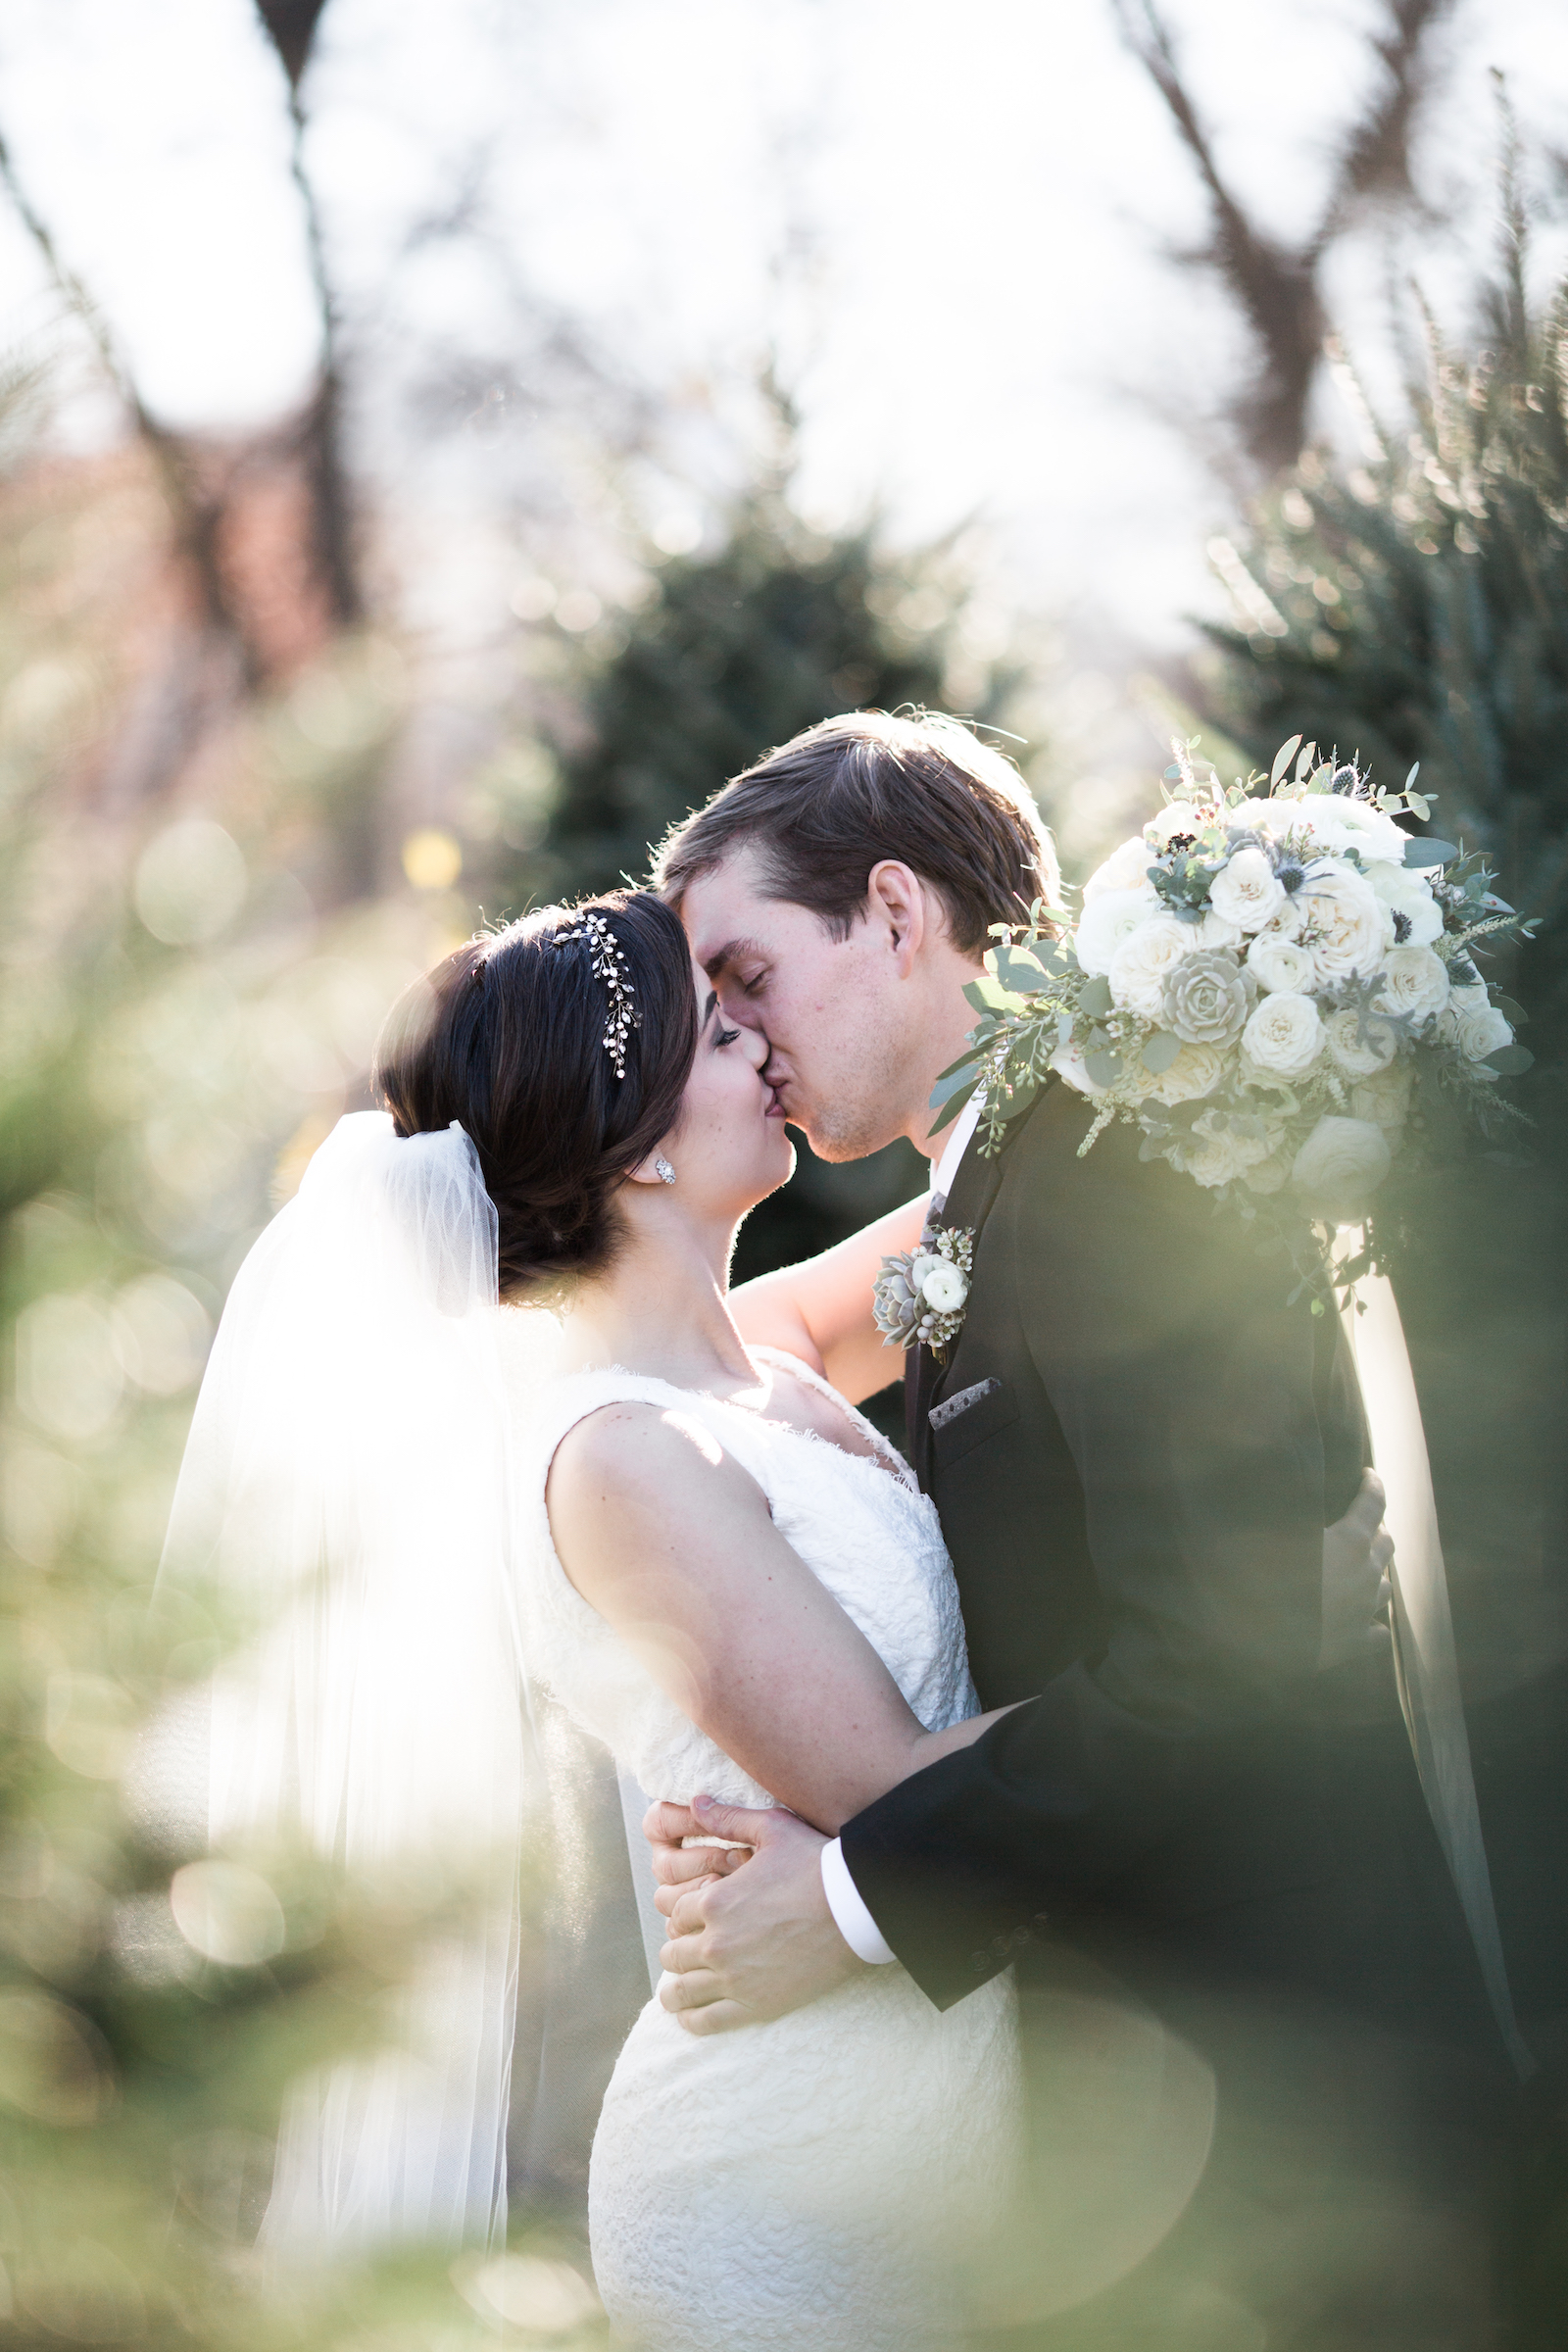 Newlywed portraits at a Christmas tree lot // Nashville Floral Design